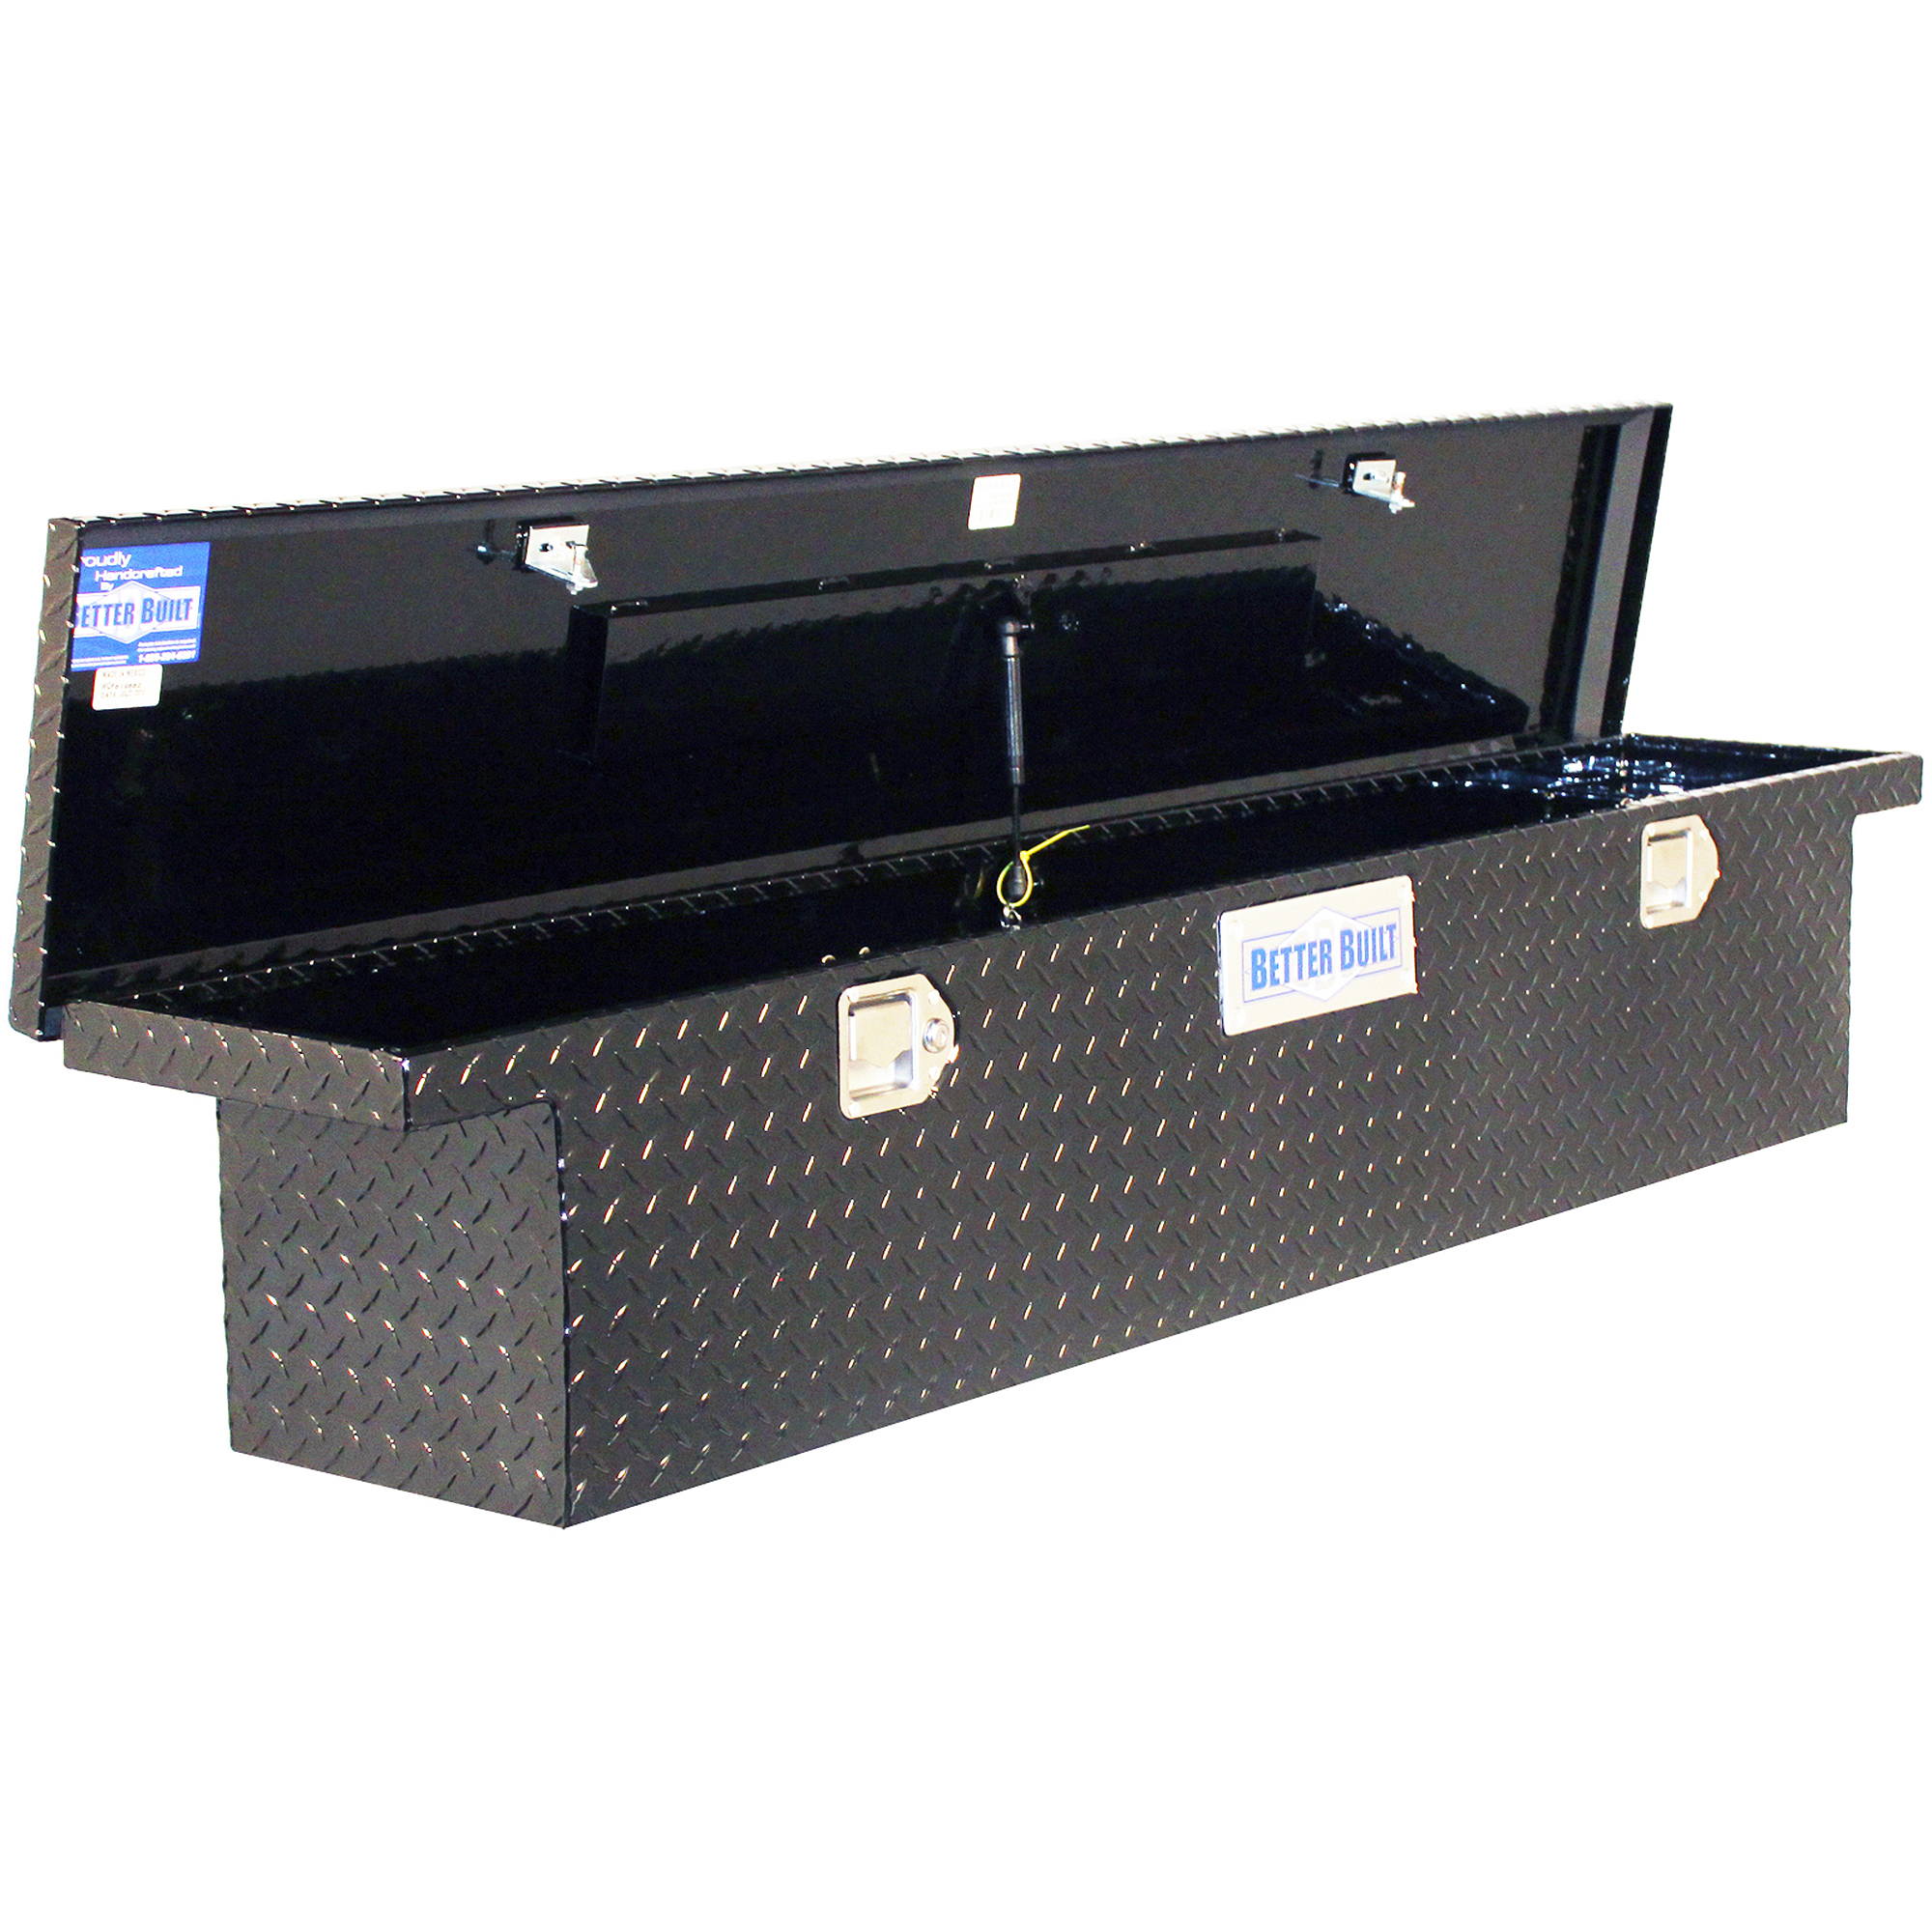 "Better Built 70"" Crown Series Slimline Low Profile Crossover Truck Tool Box"